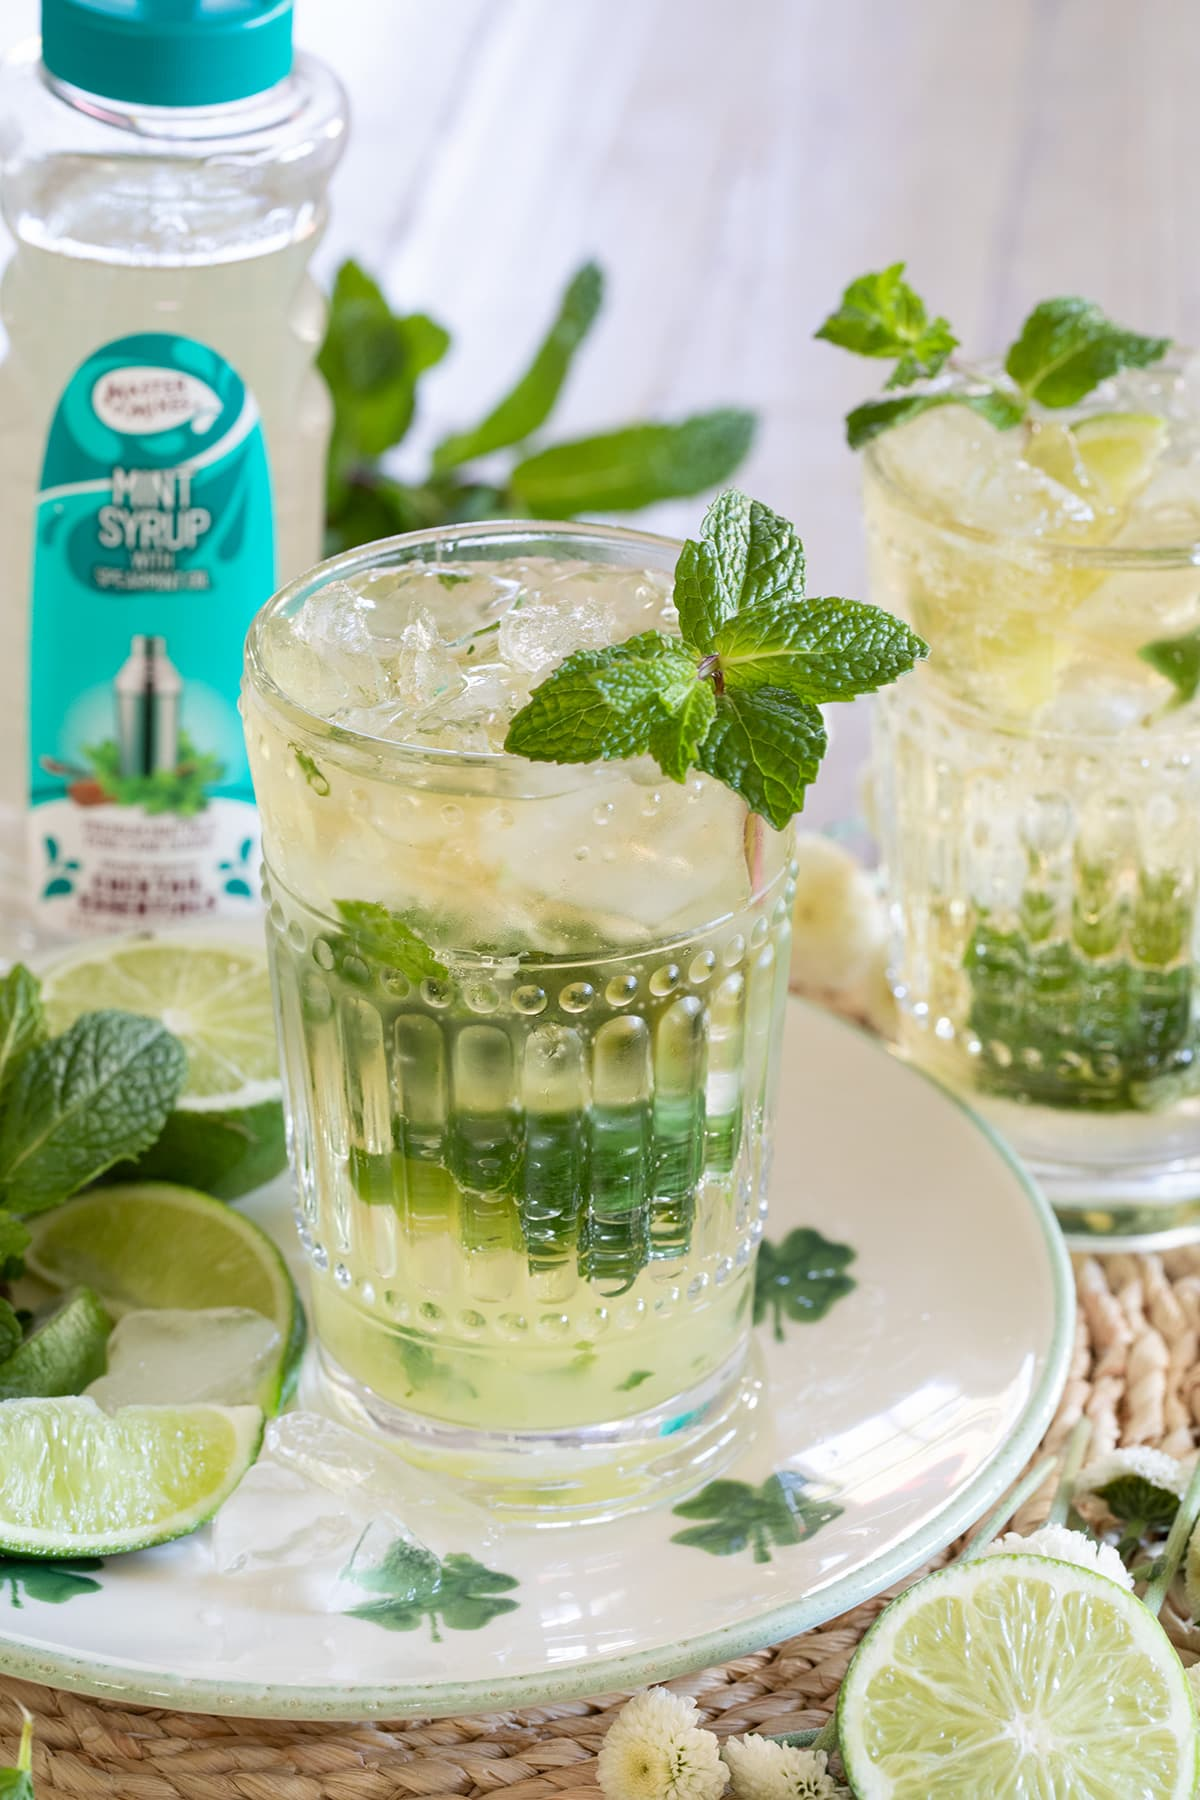 Irish Mint Mojitos are the perfect St. Patrick's Day cocktail made with Irish Whiskey, Mint Simple Syrup, muddled mint and limes and topped with club soda. #stpatricksday #mojito #whiskeycocktail #irishmojito